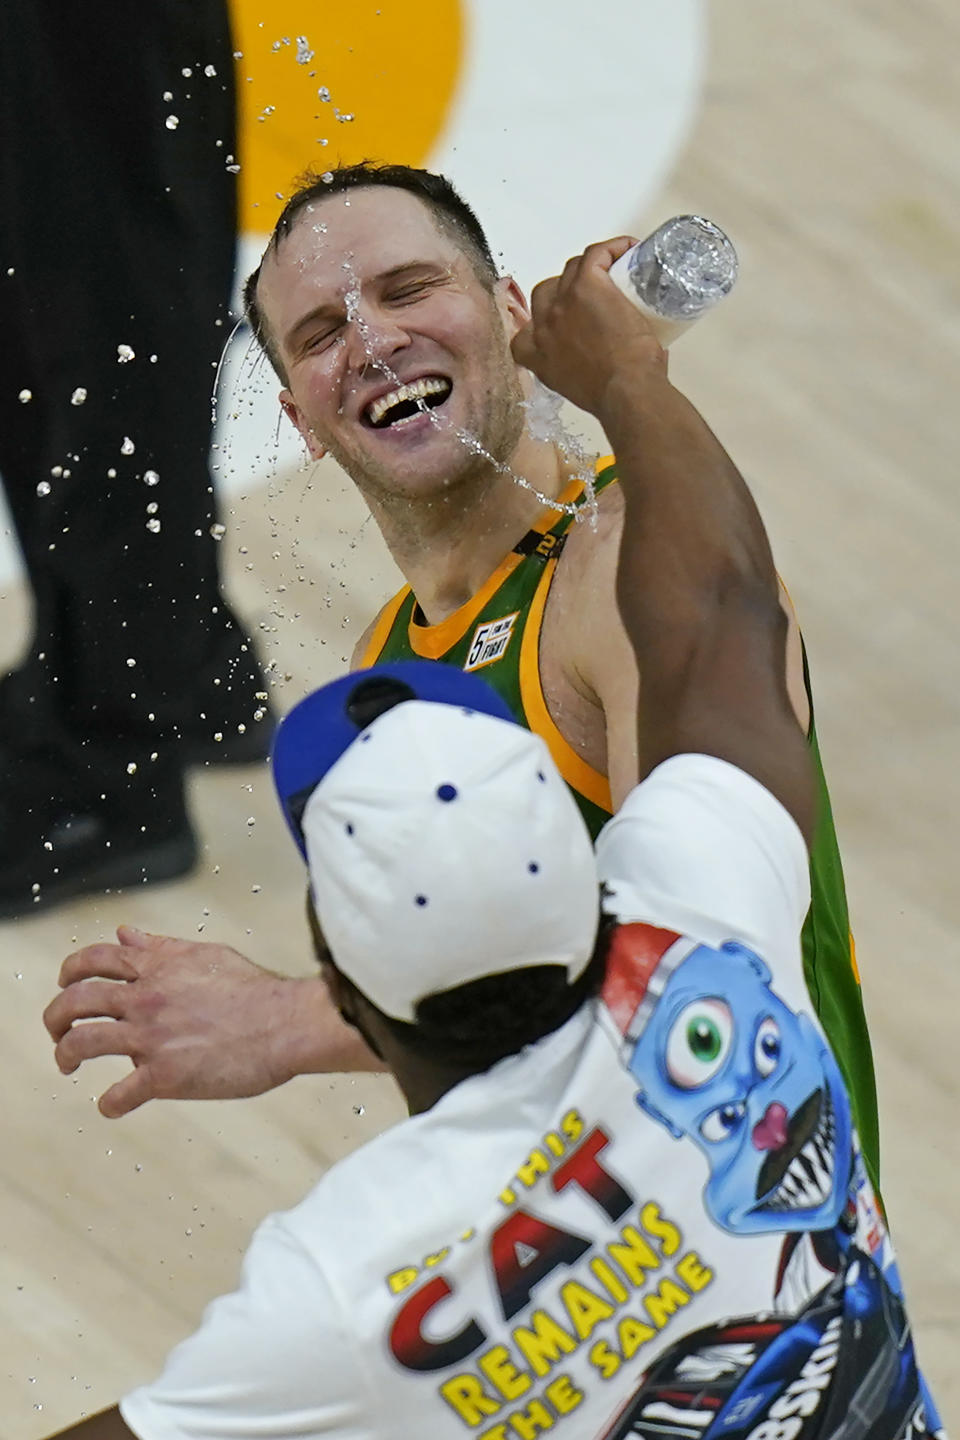 Utah Jazz guard Donovan Mitchell pours water over forward Bojan Bogdanovic as they celebrate the team's victory over the Denver Nuggets in an NBA basketball game Friday, May 7, 2021, in Salt Lake City. (AP Photo/Rick Bowmer)